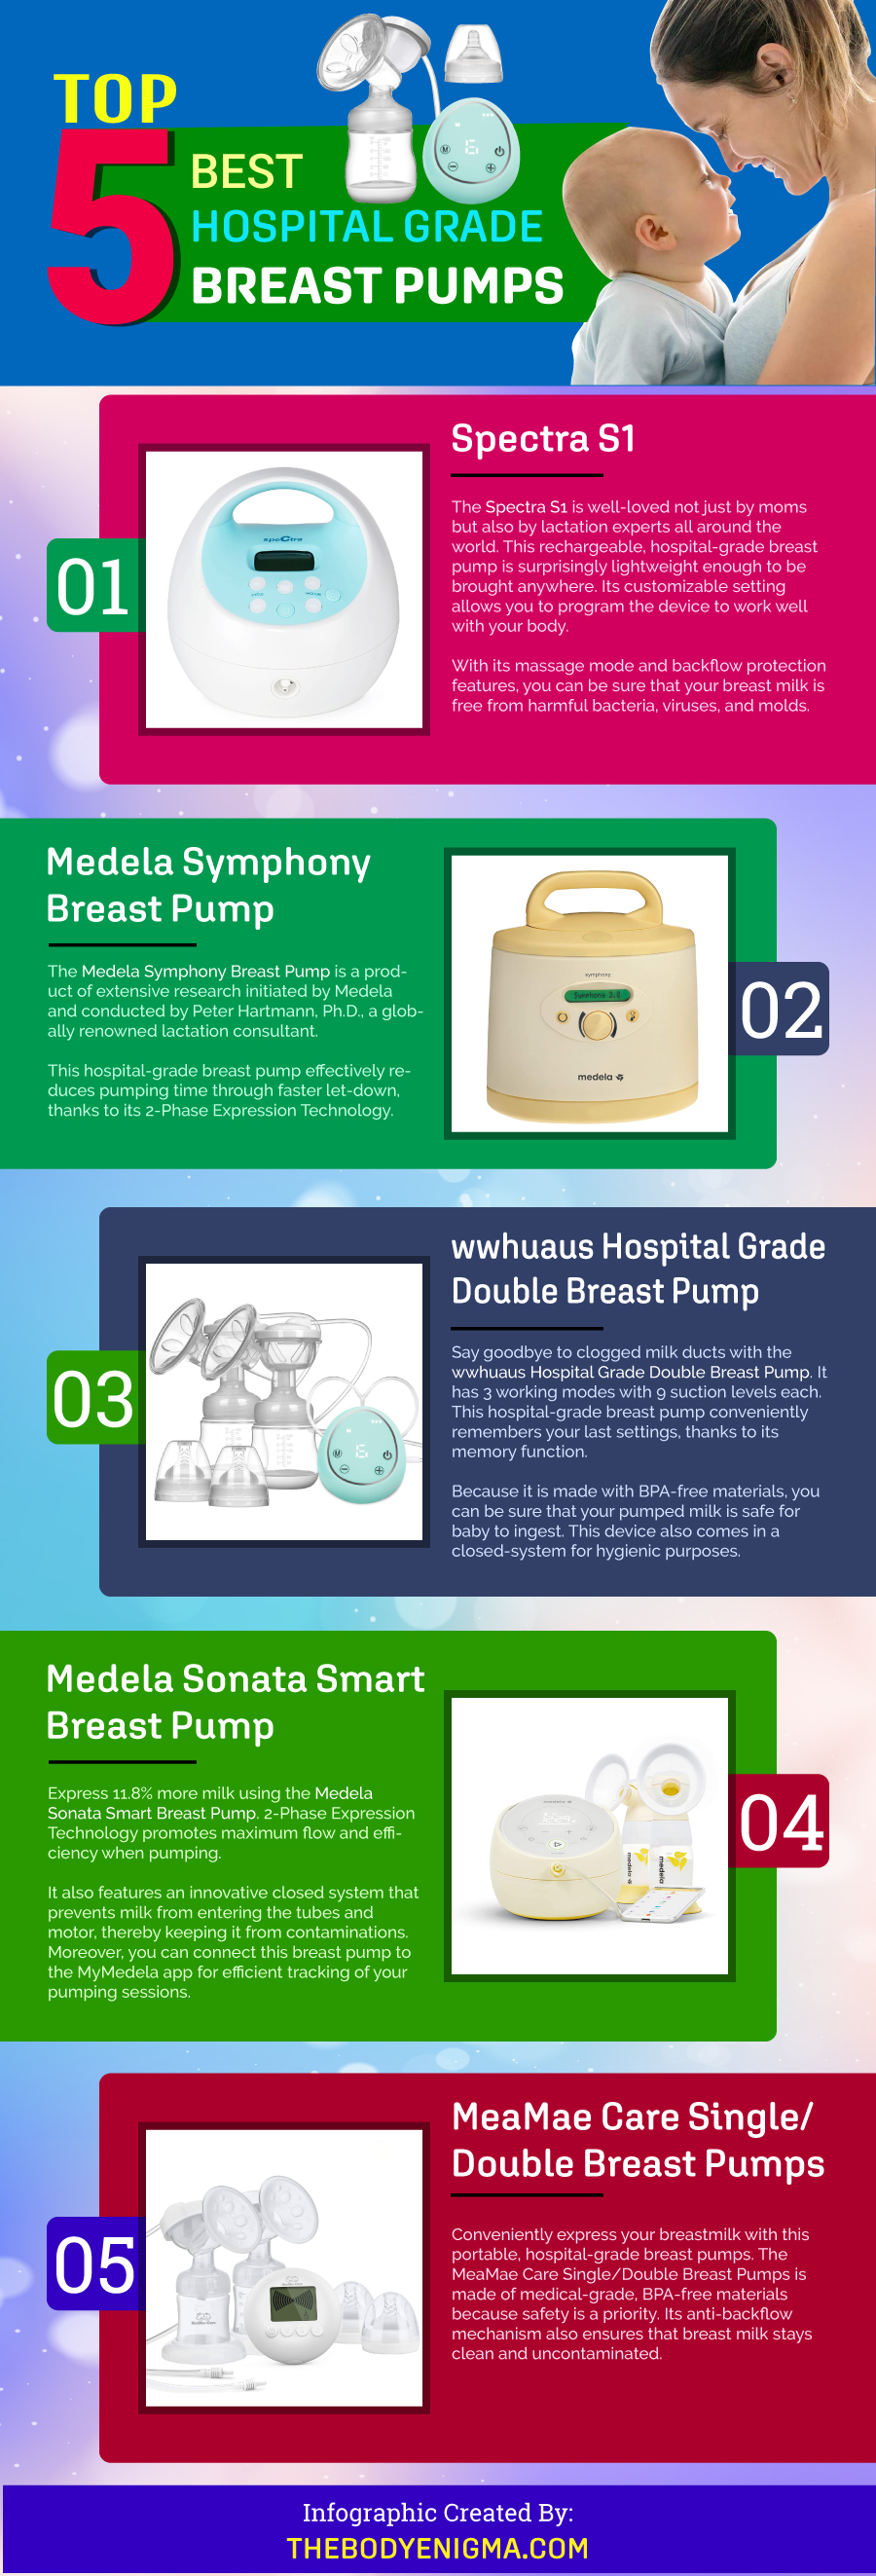 Top Five Best Hospital Grade Breast Pumps